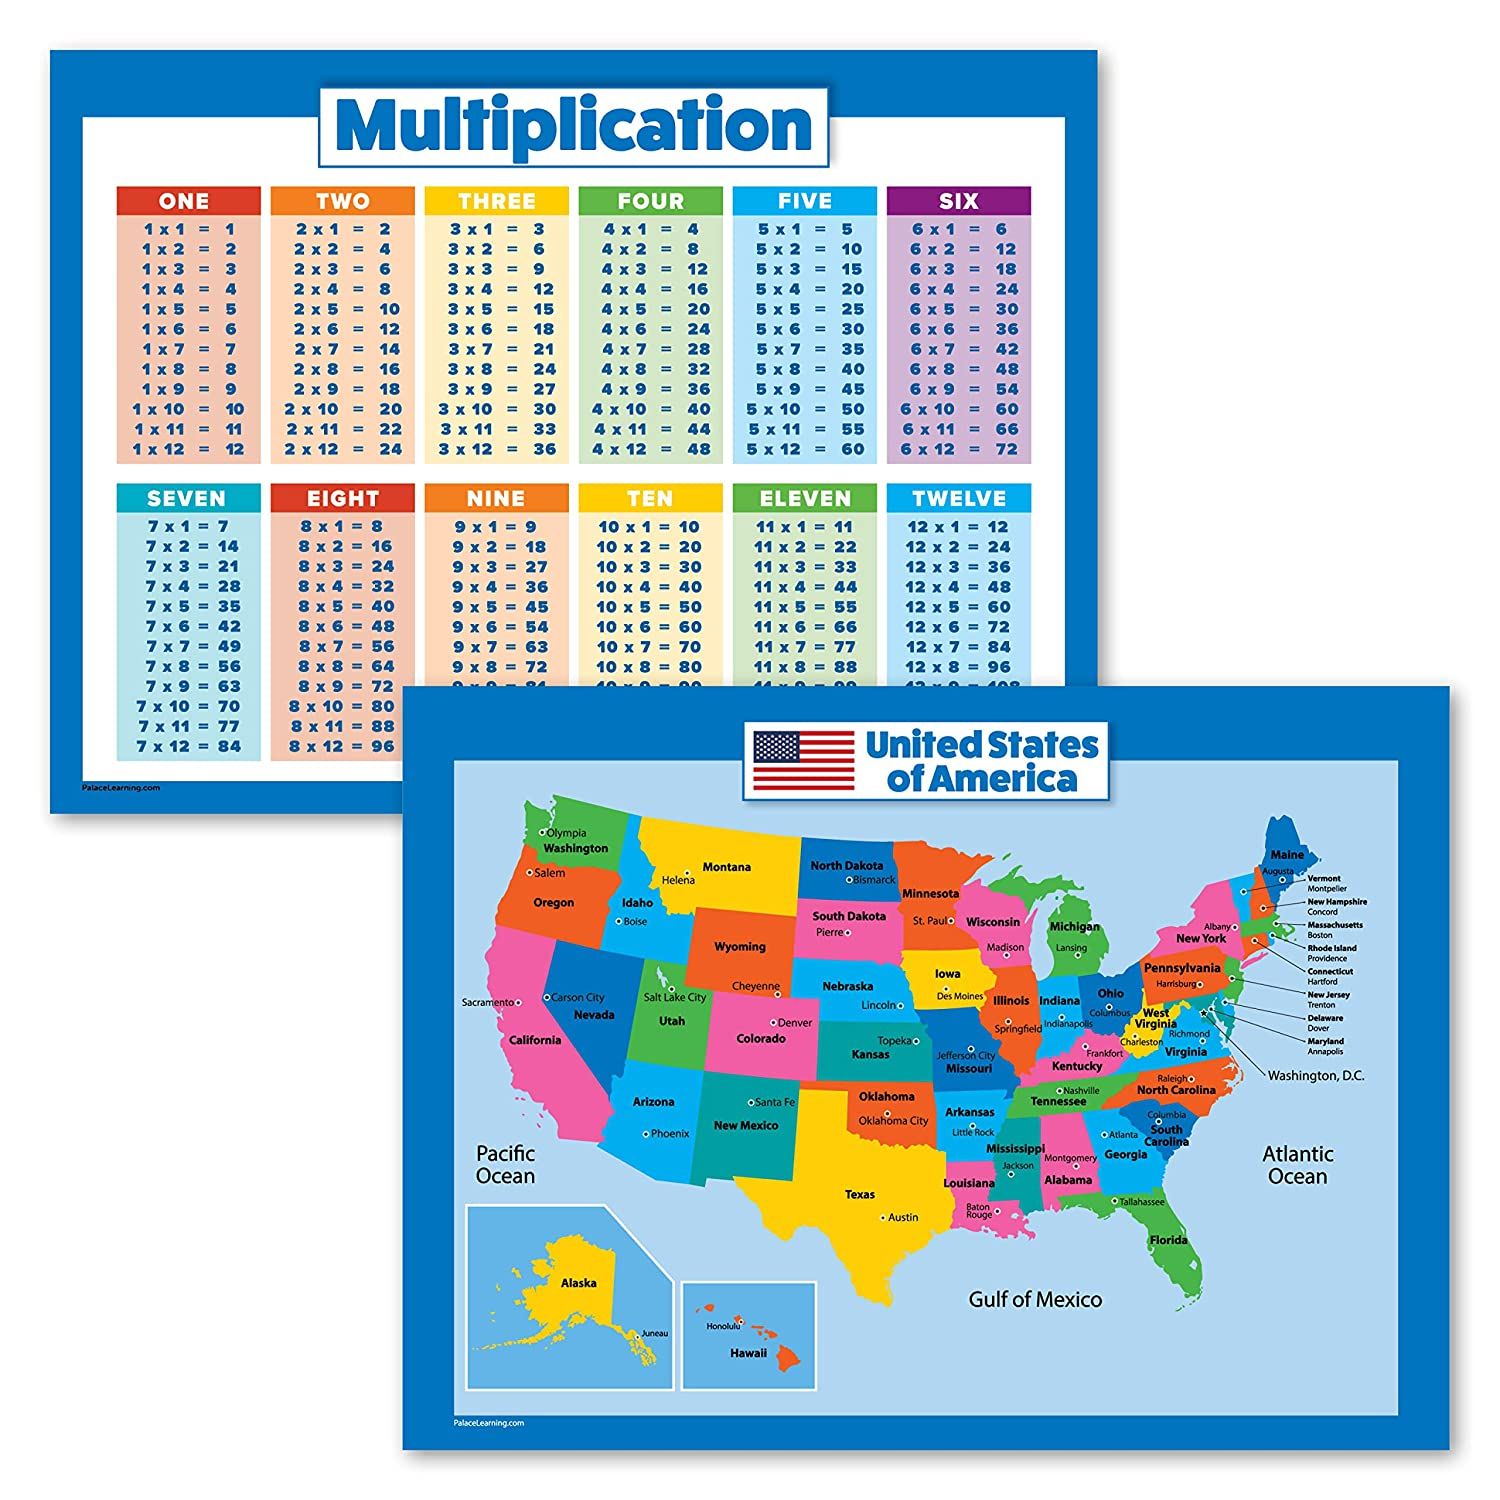 "2 Pack - Multiplication Tables & USA Map for Kids Poster Set - Wall Chart of United States of America (Laminated, 18"" x 24"") 91oTkLg0dZL"